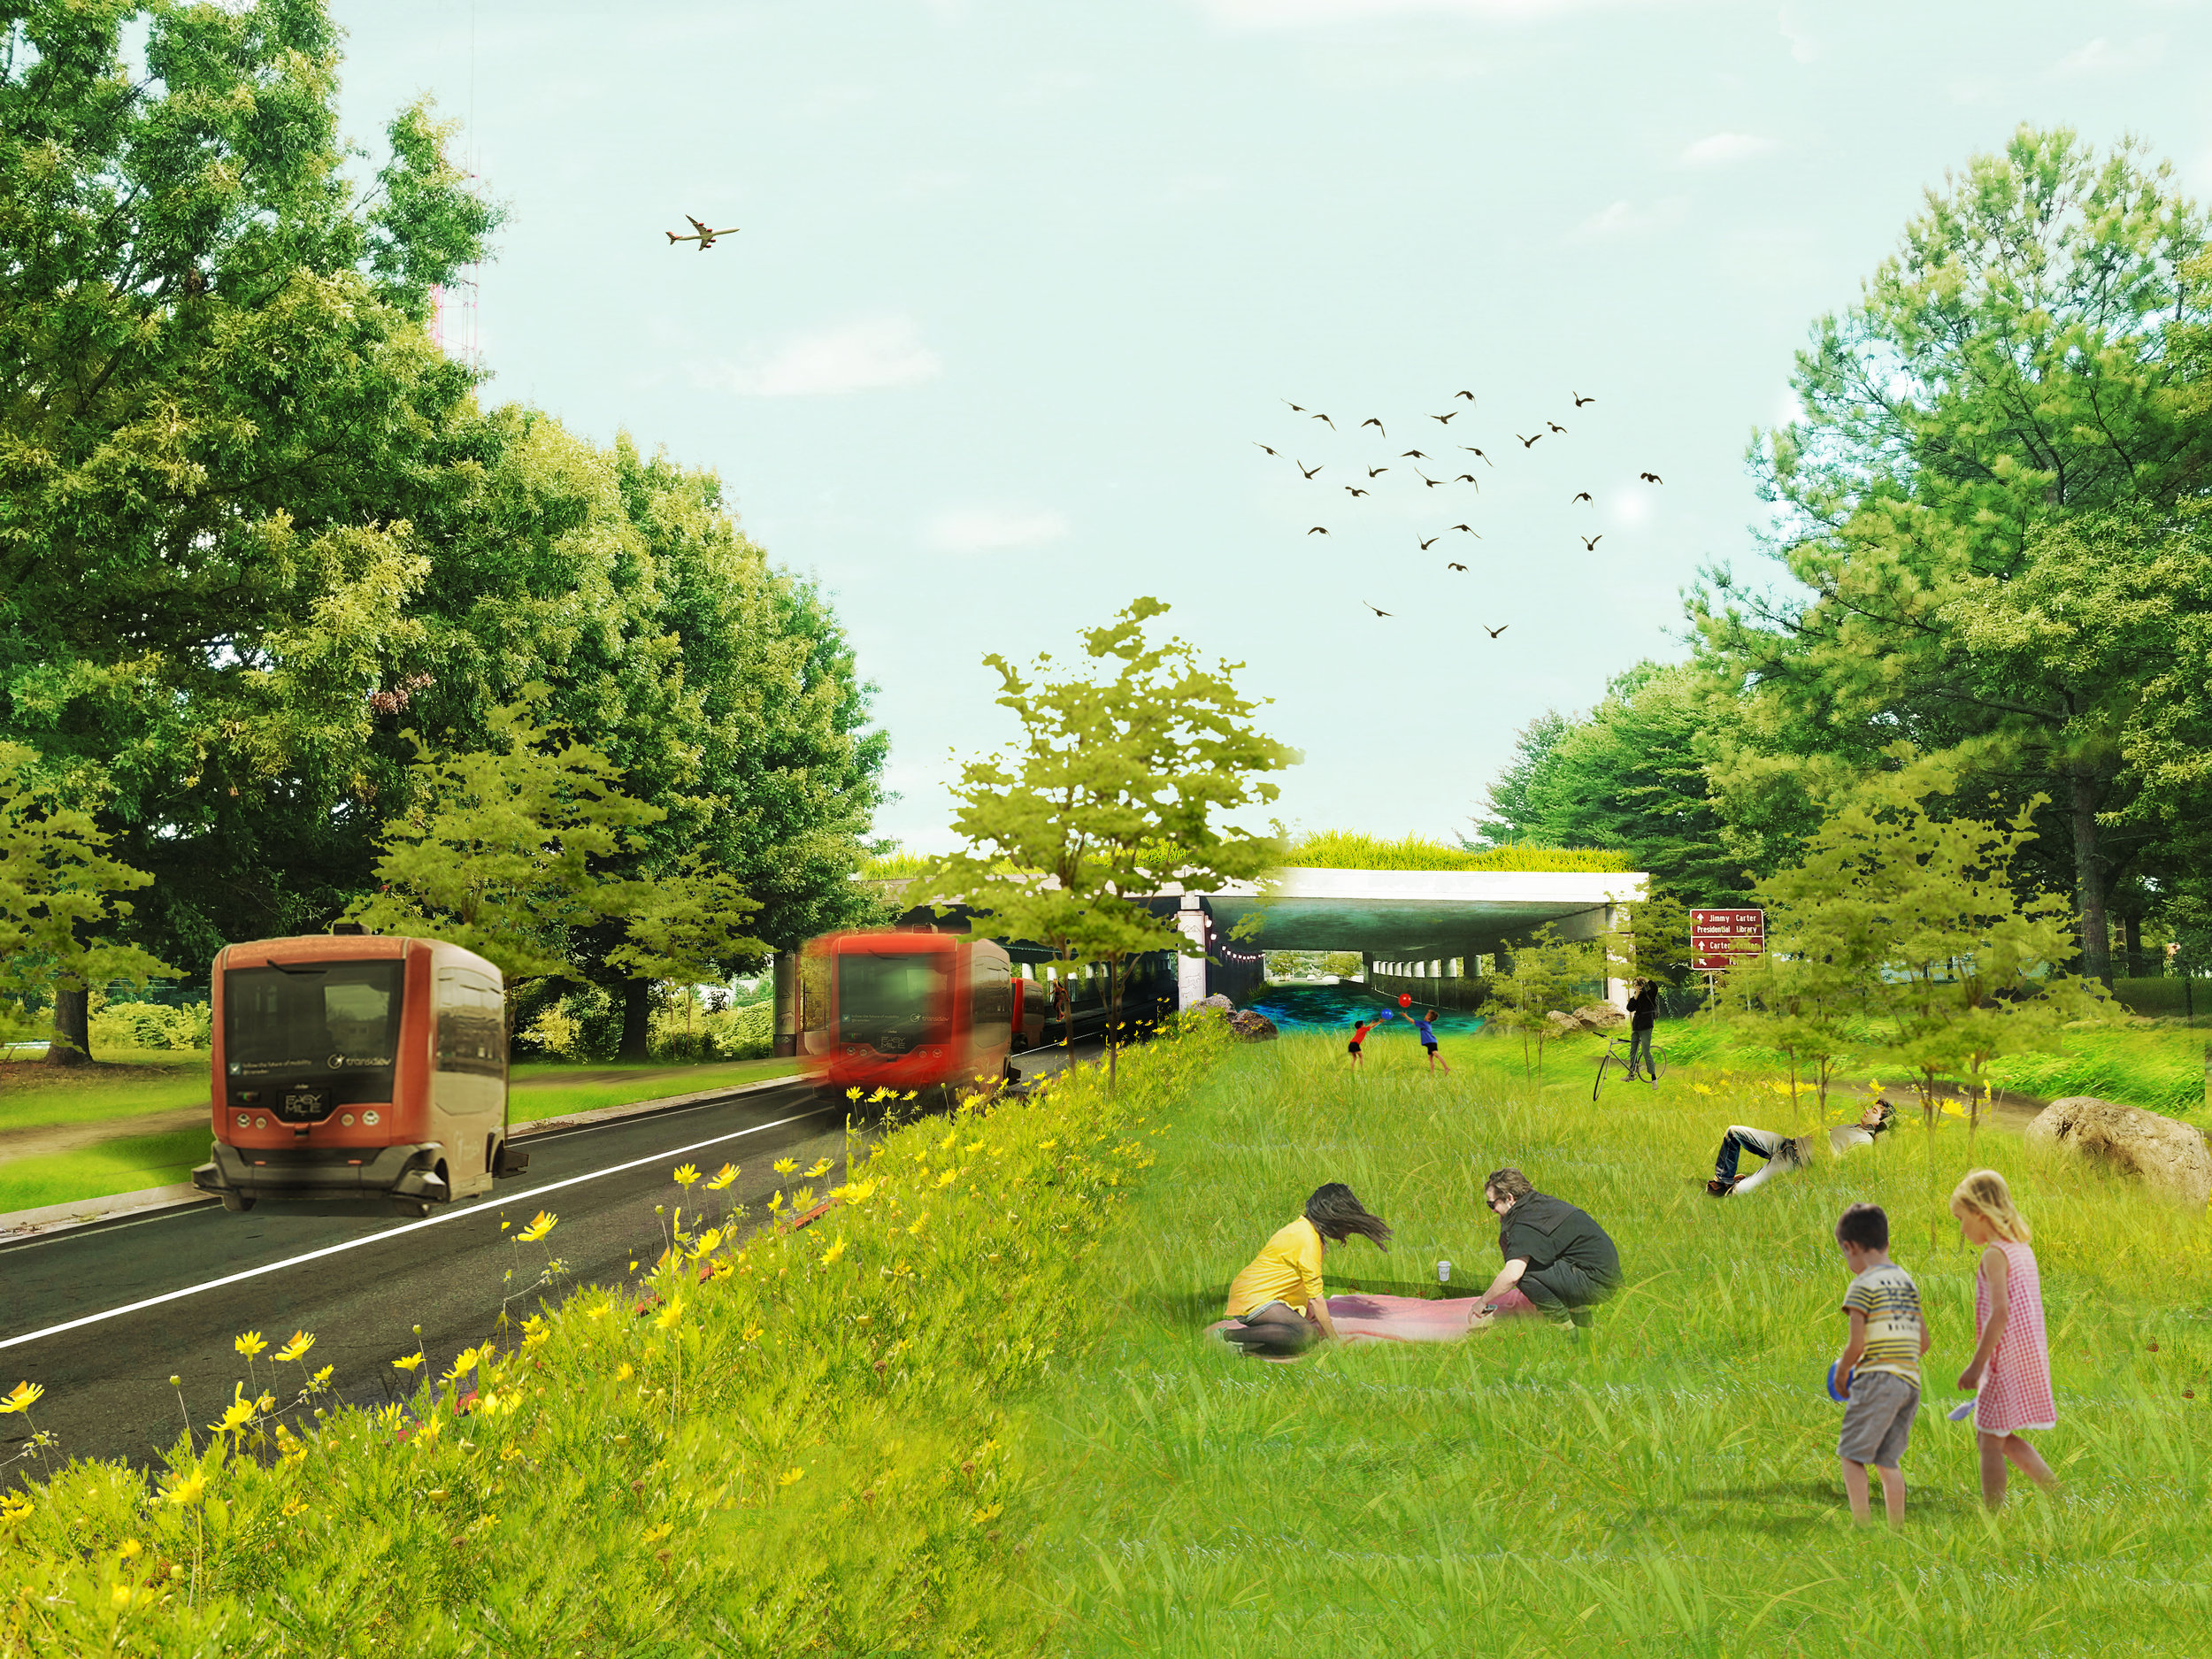 2_Stormwater to Hyrdrotunnel2_AFTER_BUS.jpg